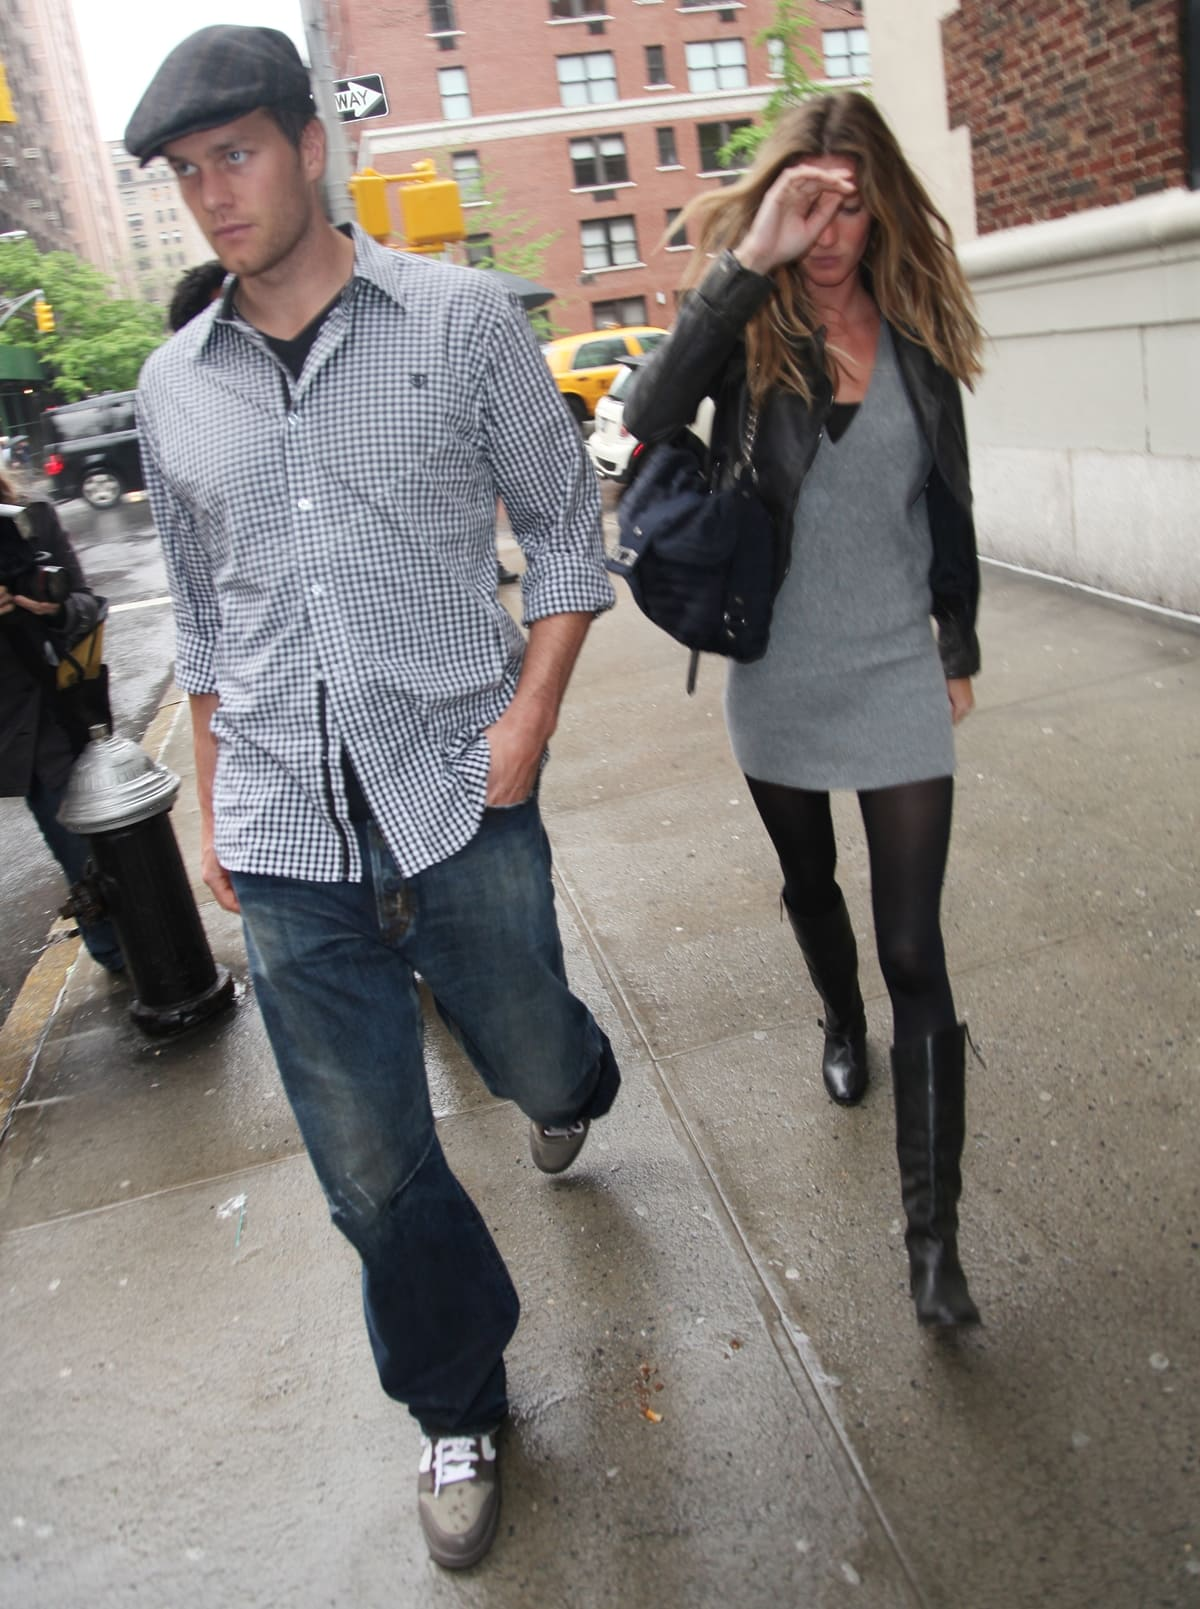 Tom Brady and Gisele Bündchen met in 2006 through a mutual friend at West Village wine bar Turks & Frogs